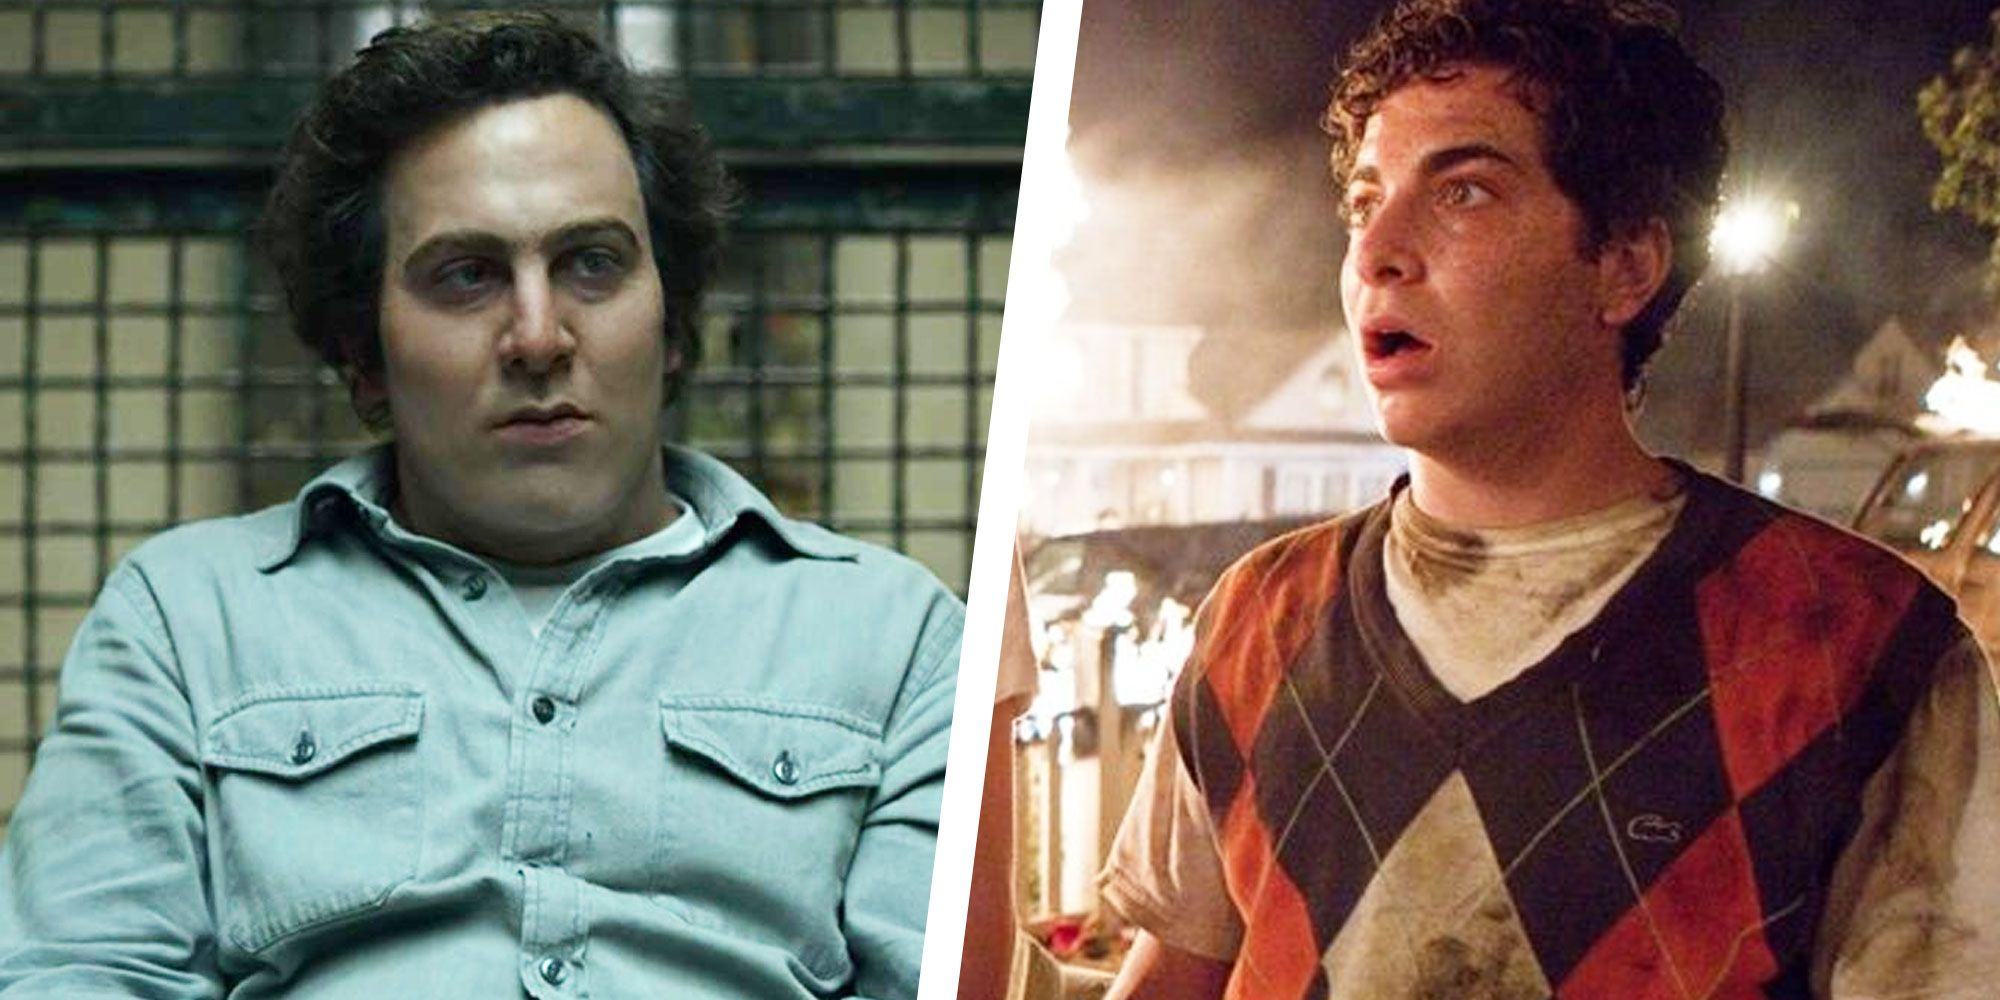 You Knew Oliver Cooper from Teen Comedy Project X—But Now He's Mindhunter's Son of Sam